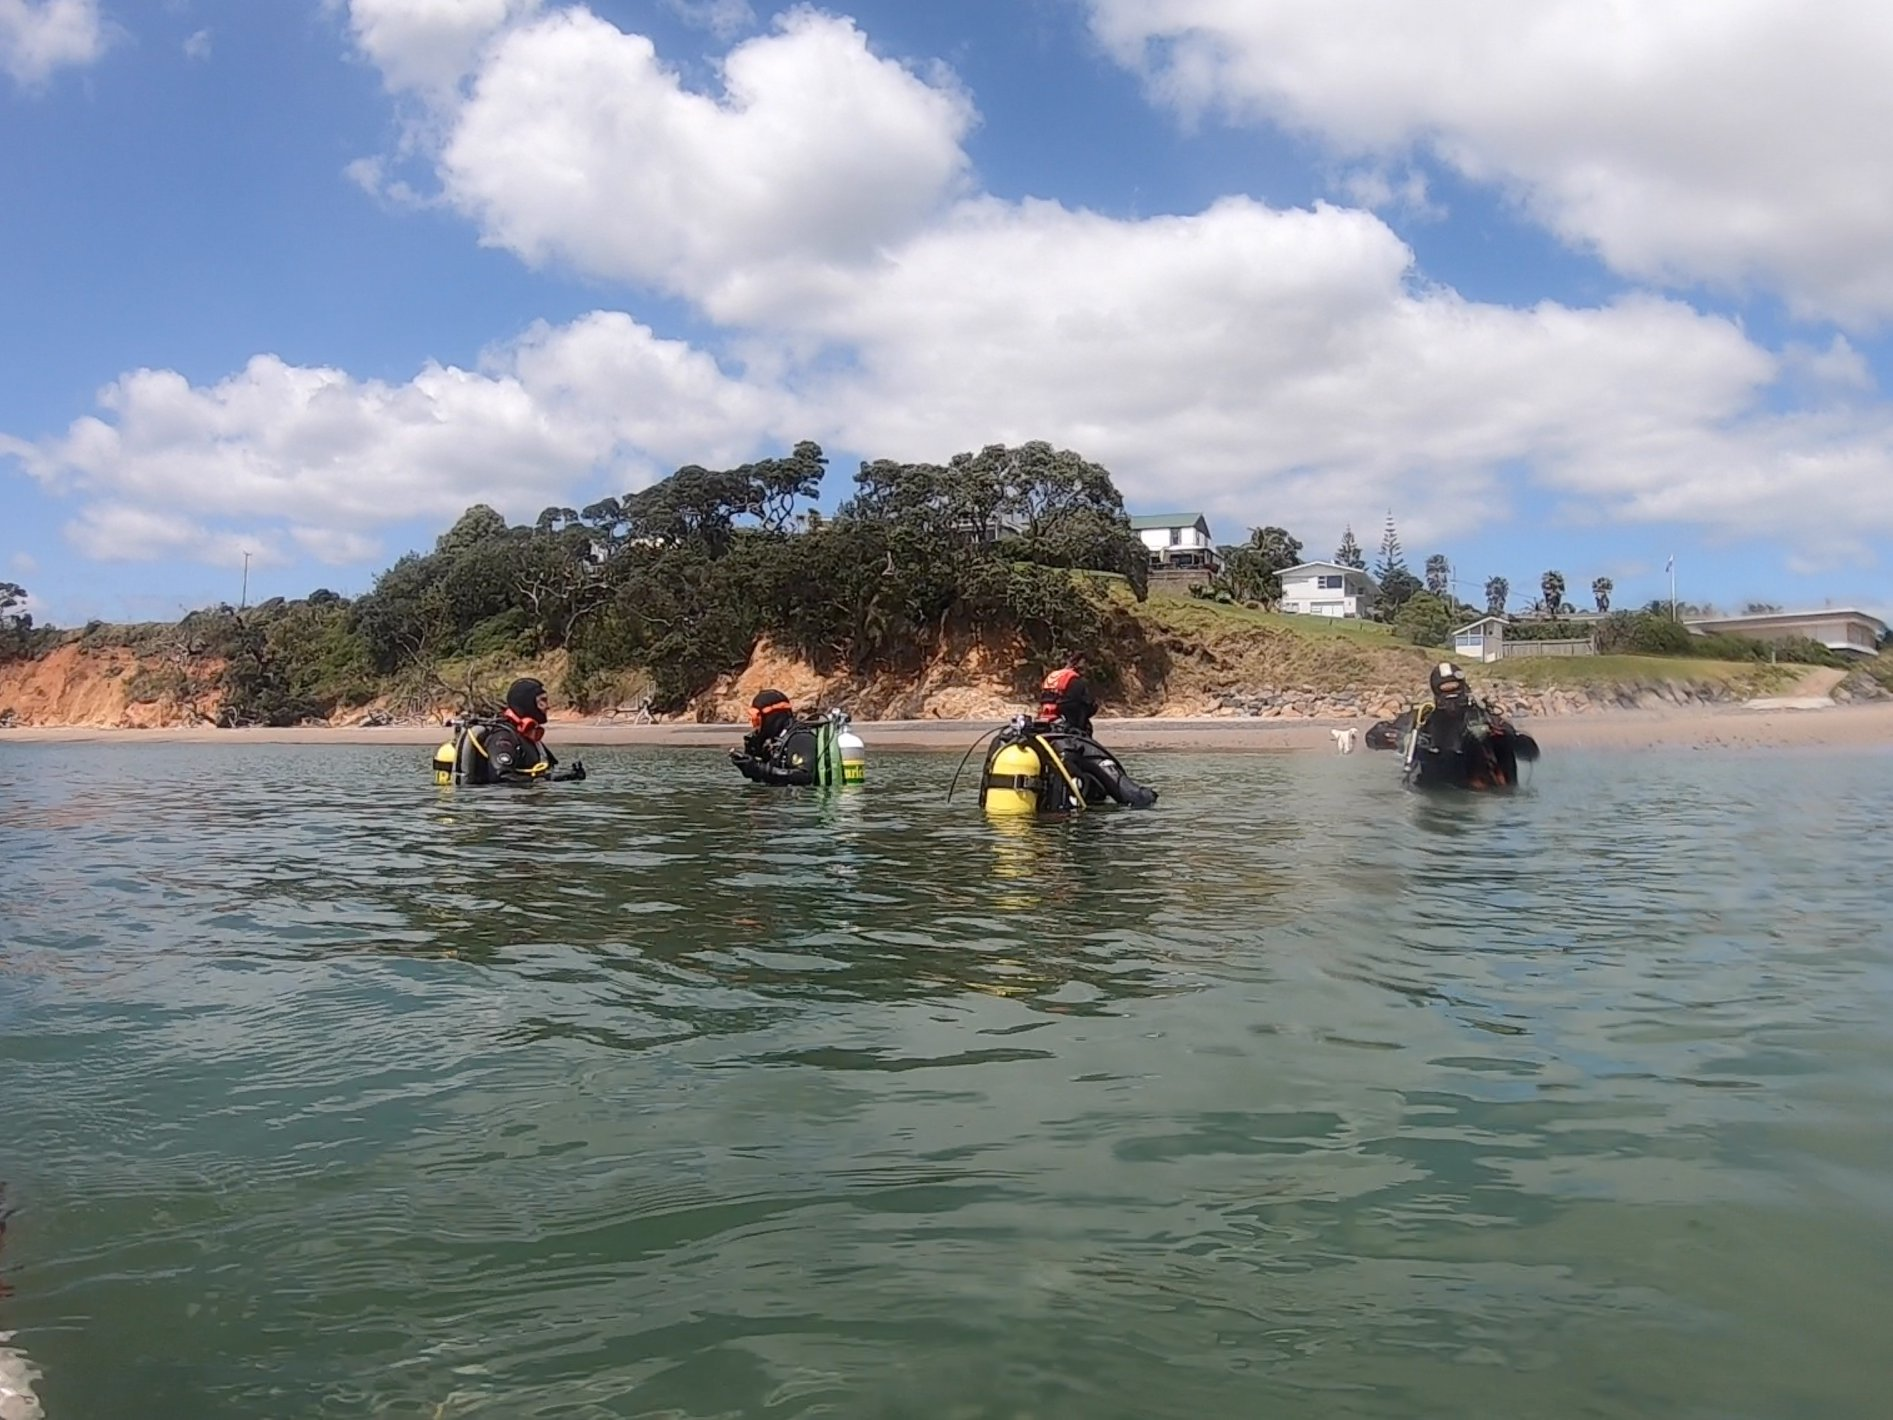 New Zealand Scuba Diving Guided Tour: 2 Dives in Whangarei